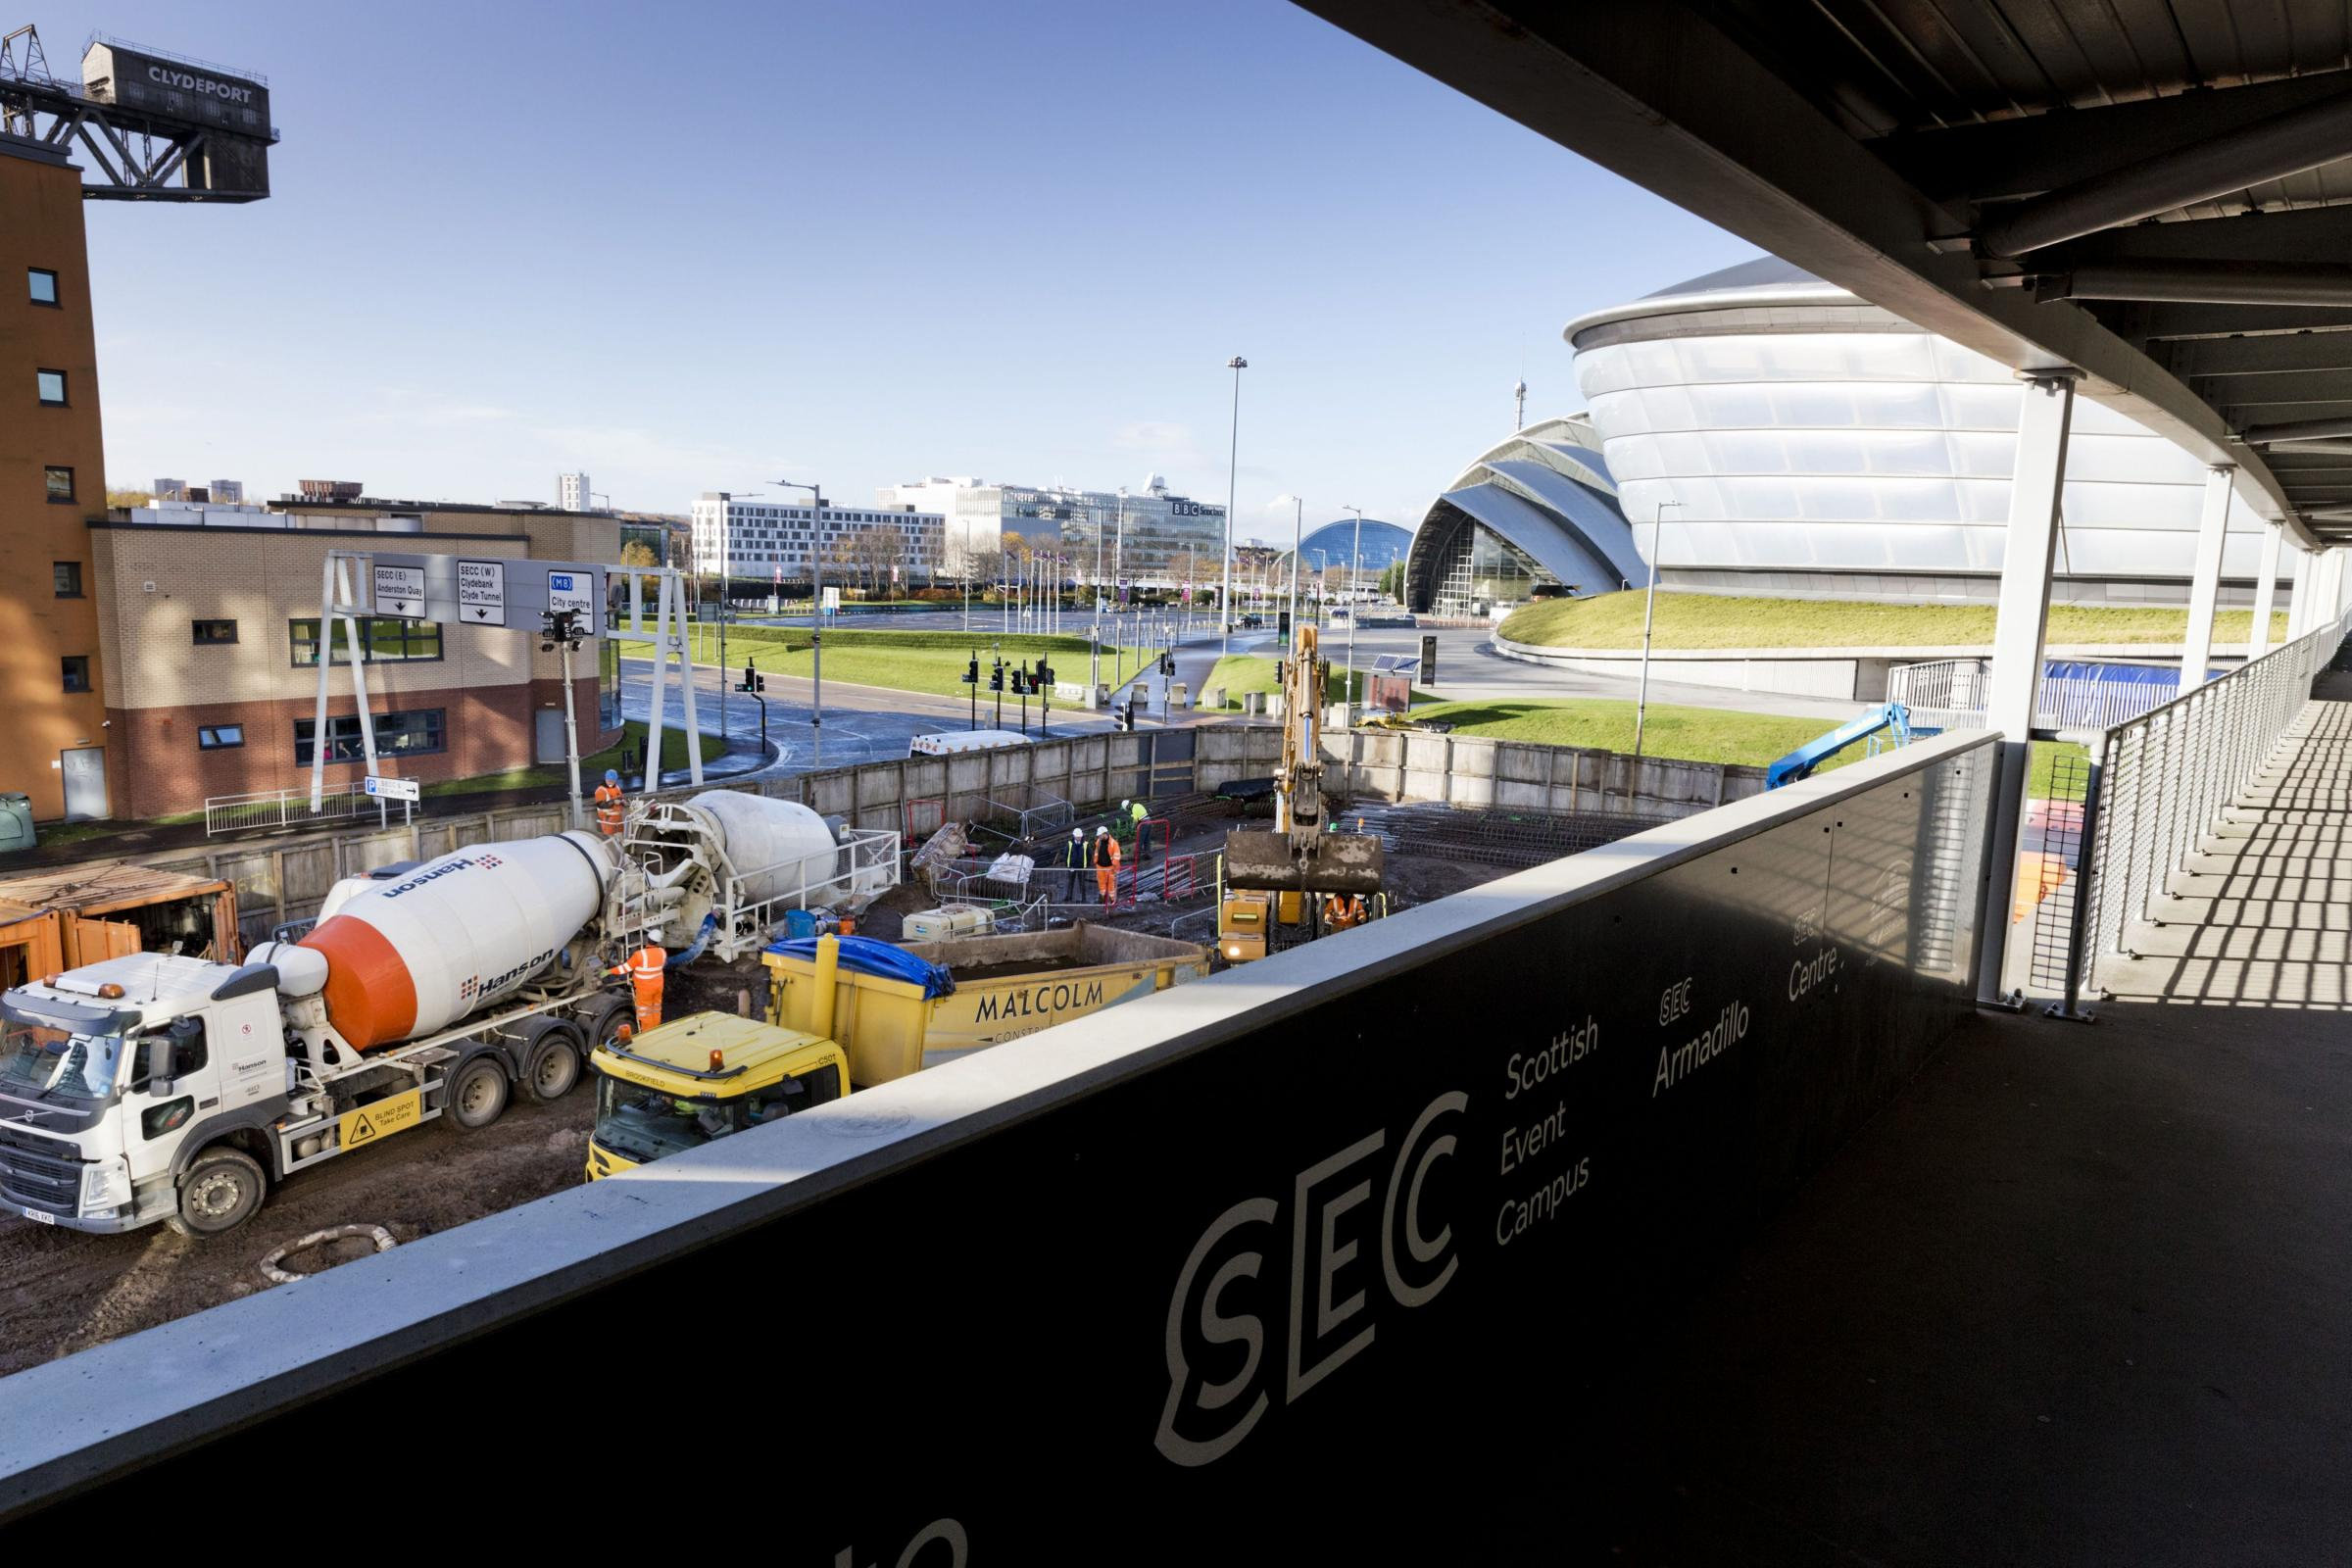 Work begins on two new hotels close to SSE Hydro to boost Glasgow economy